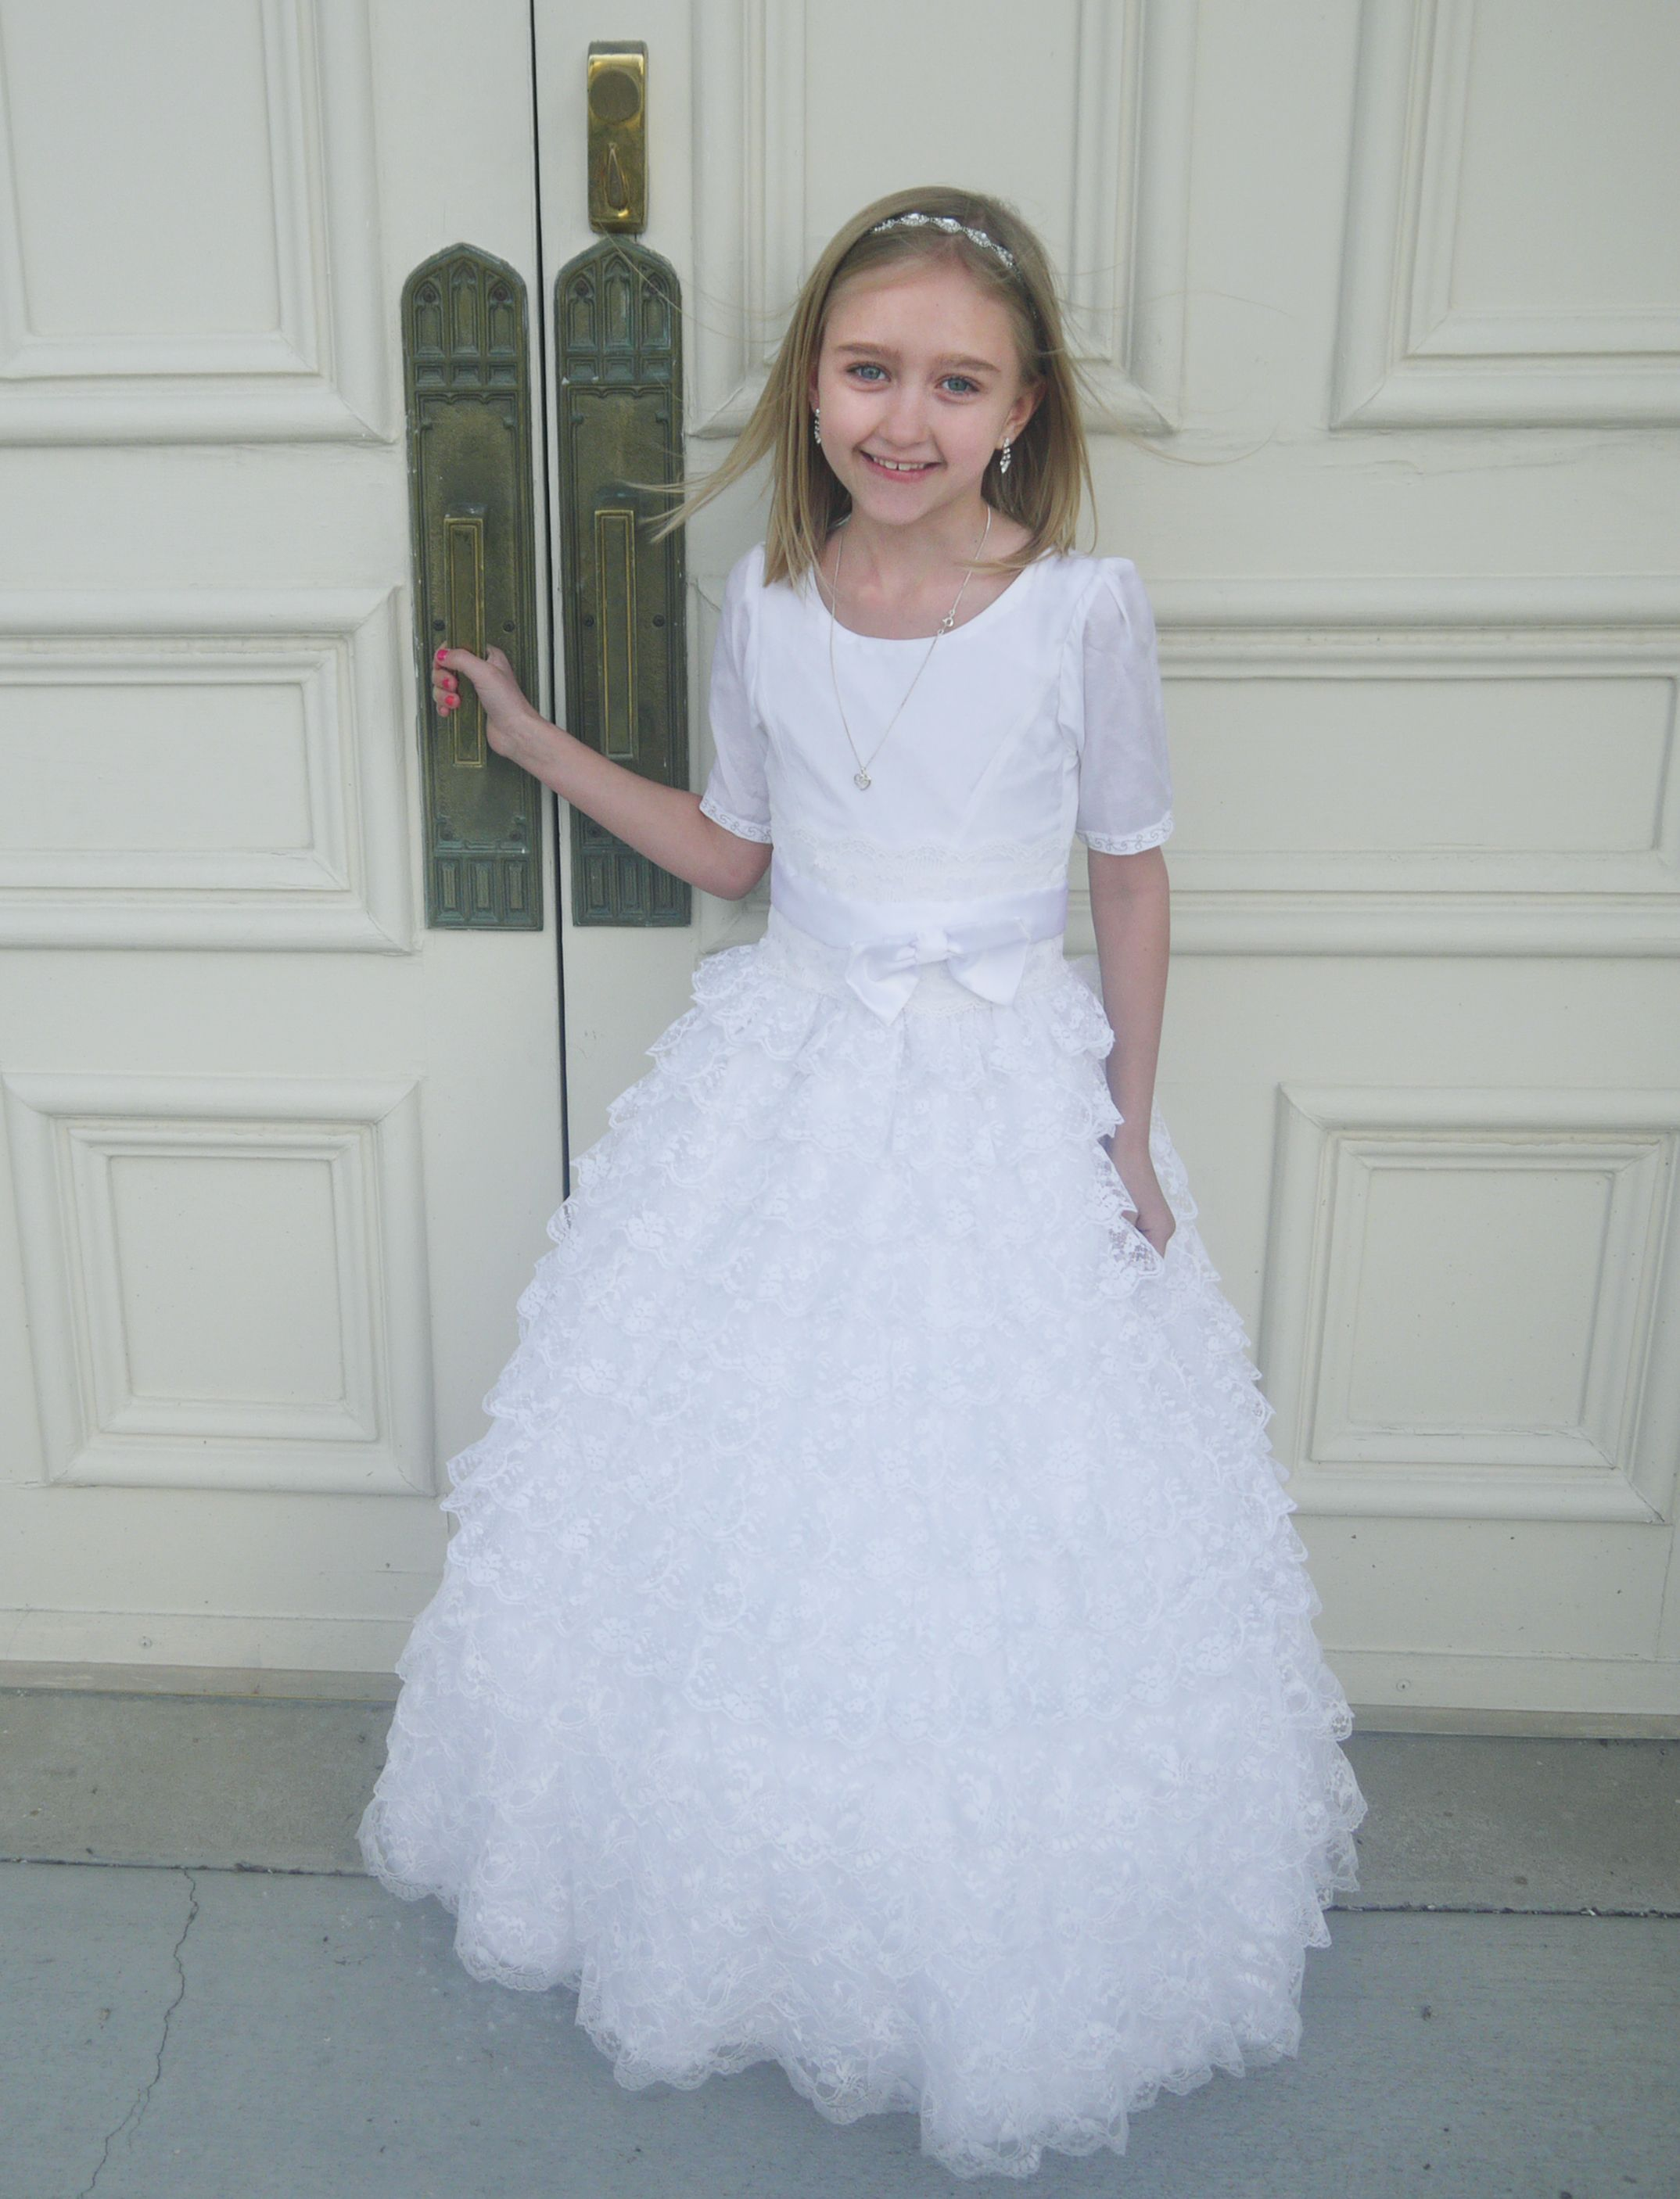 White lace 8 year old baptism dress Girls dress outfits